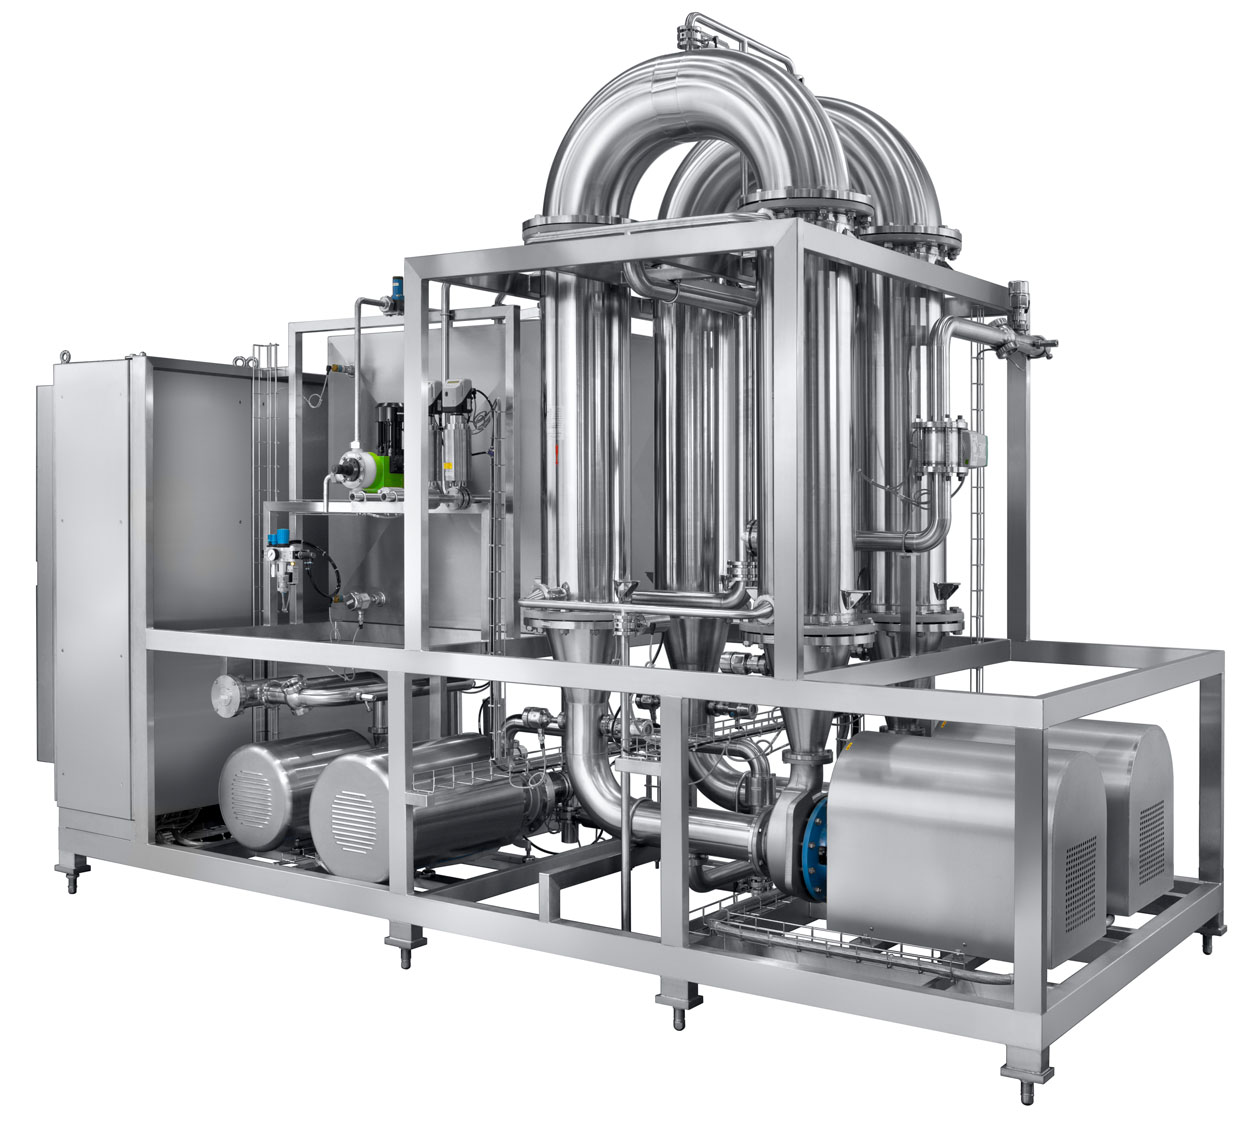 Product picture of cross-flow-system